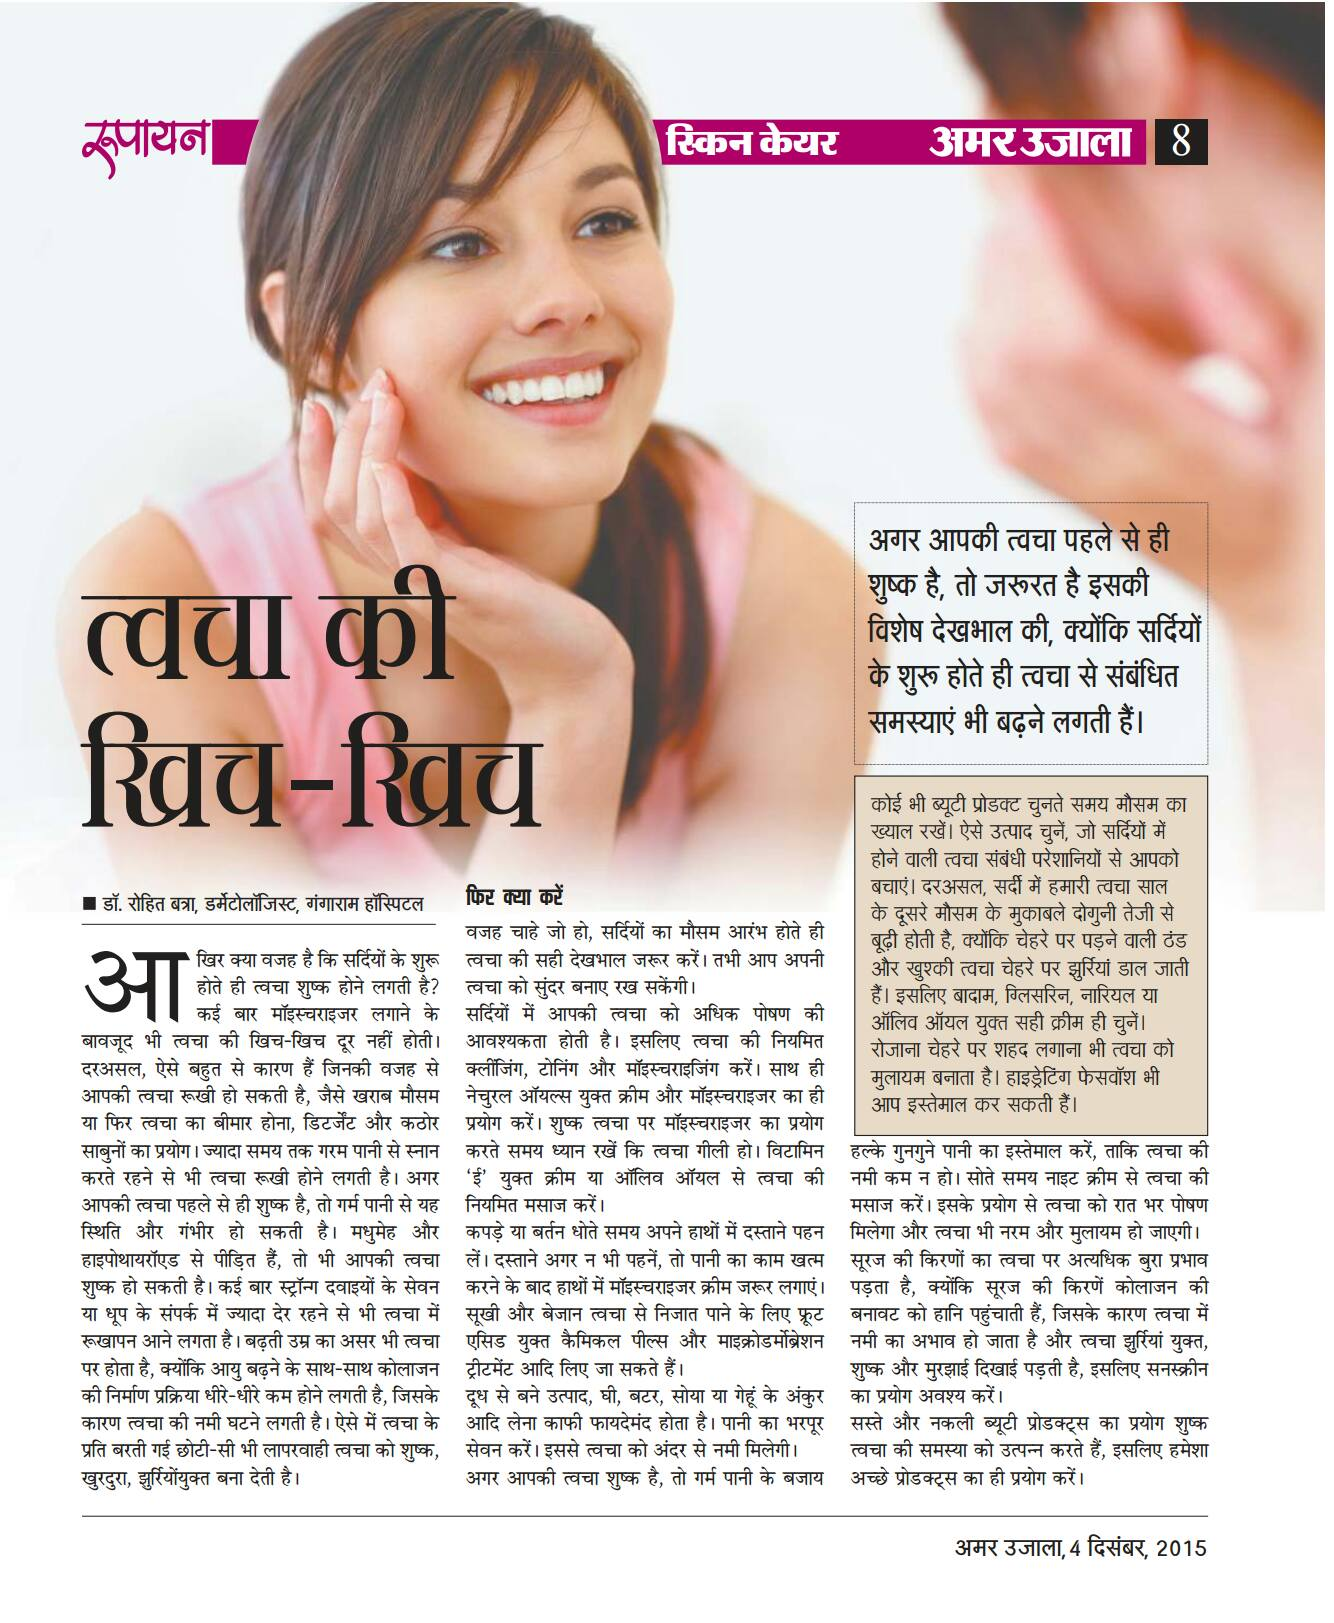 Dr Rohit Batra' inputs in today's Amar Ujala